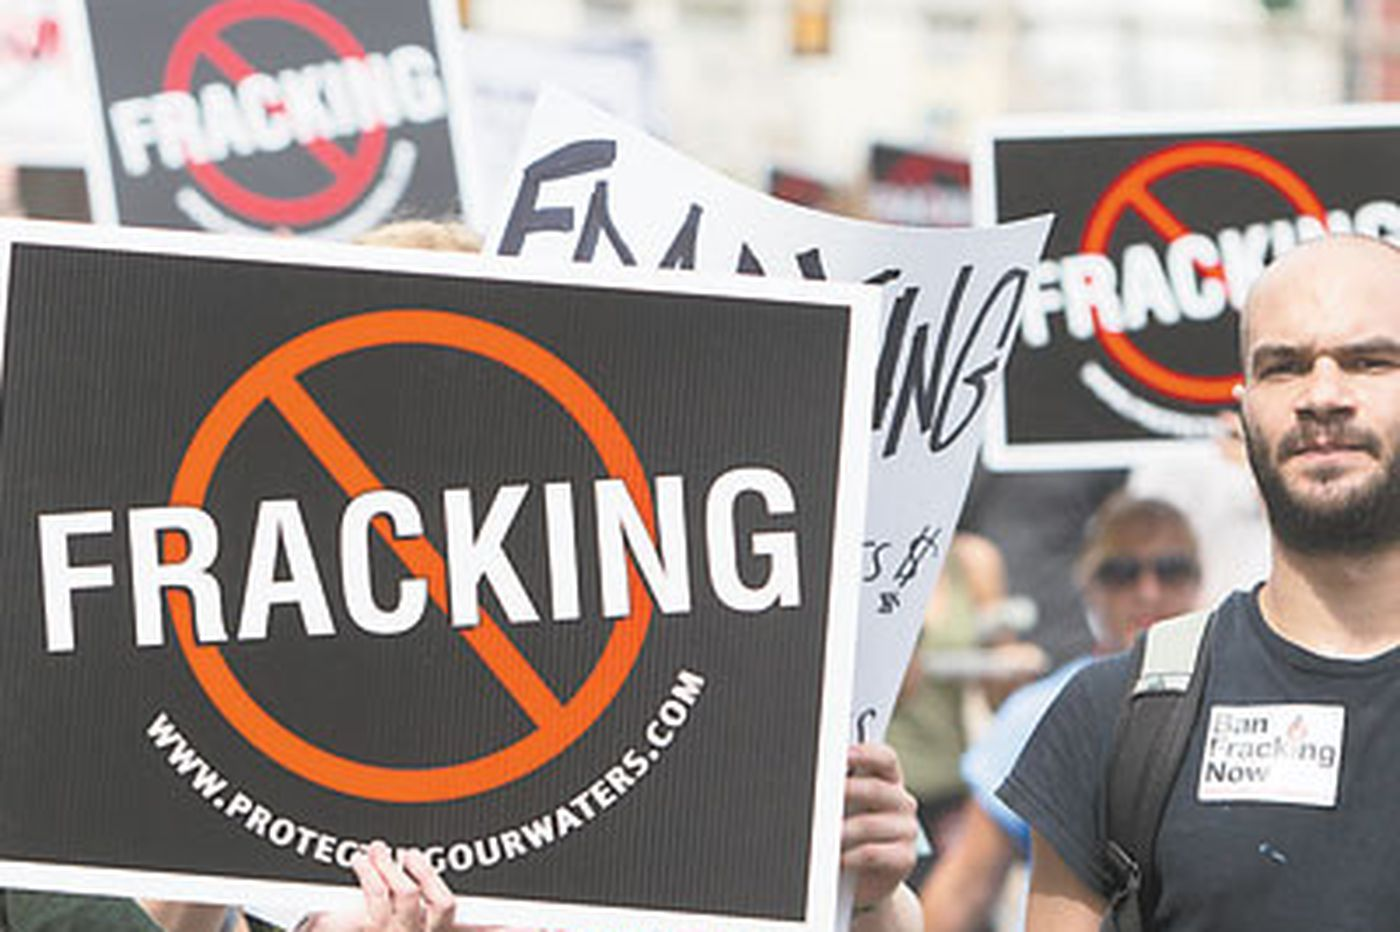 Shale-gas industry pros - and protesters - will converge in Philly